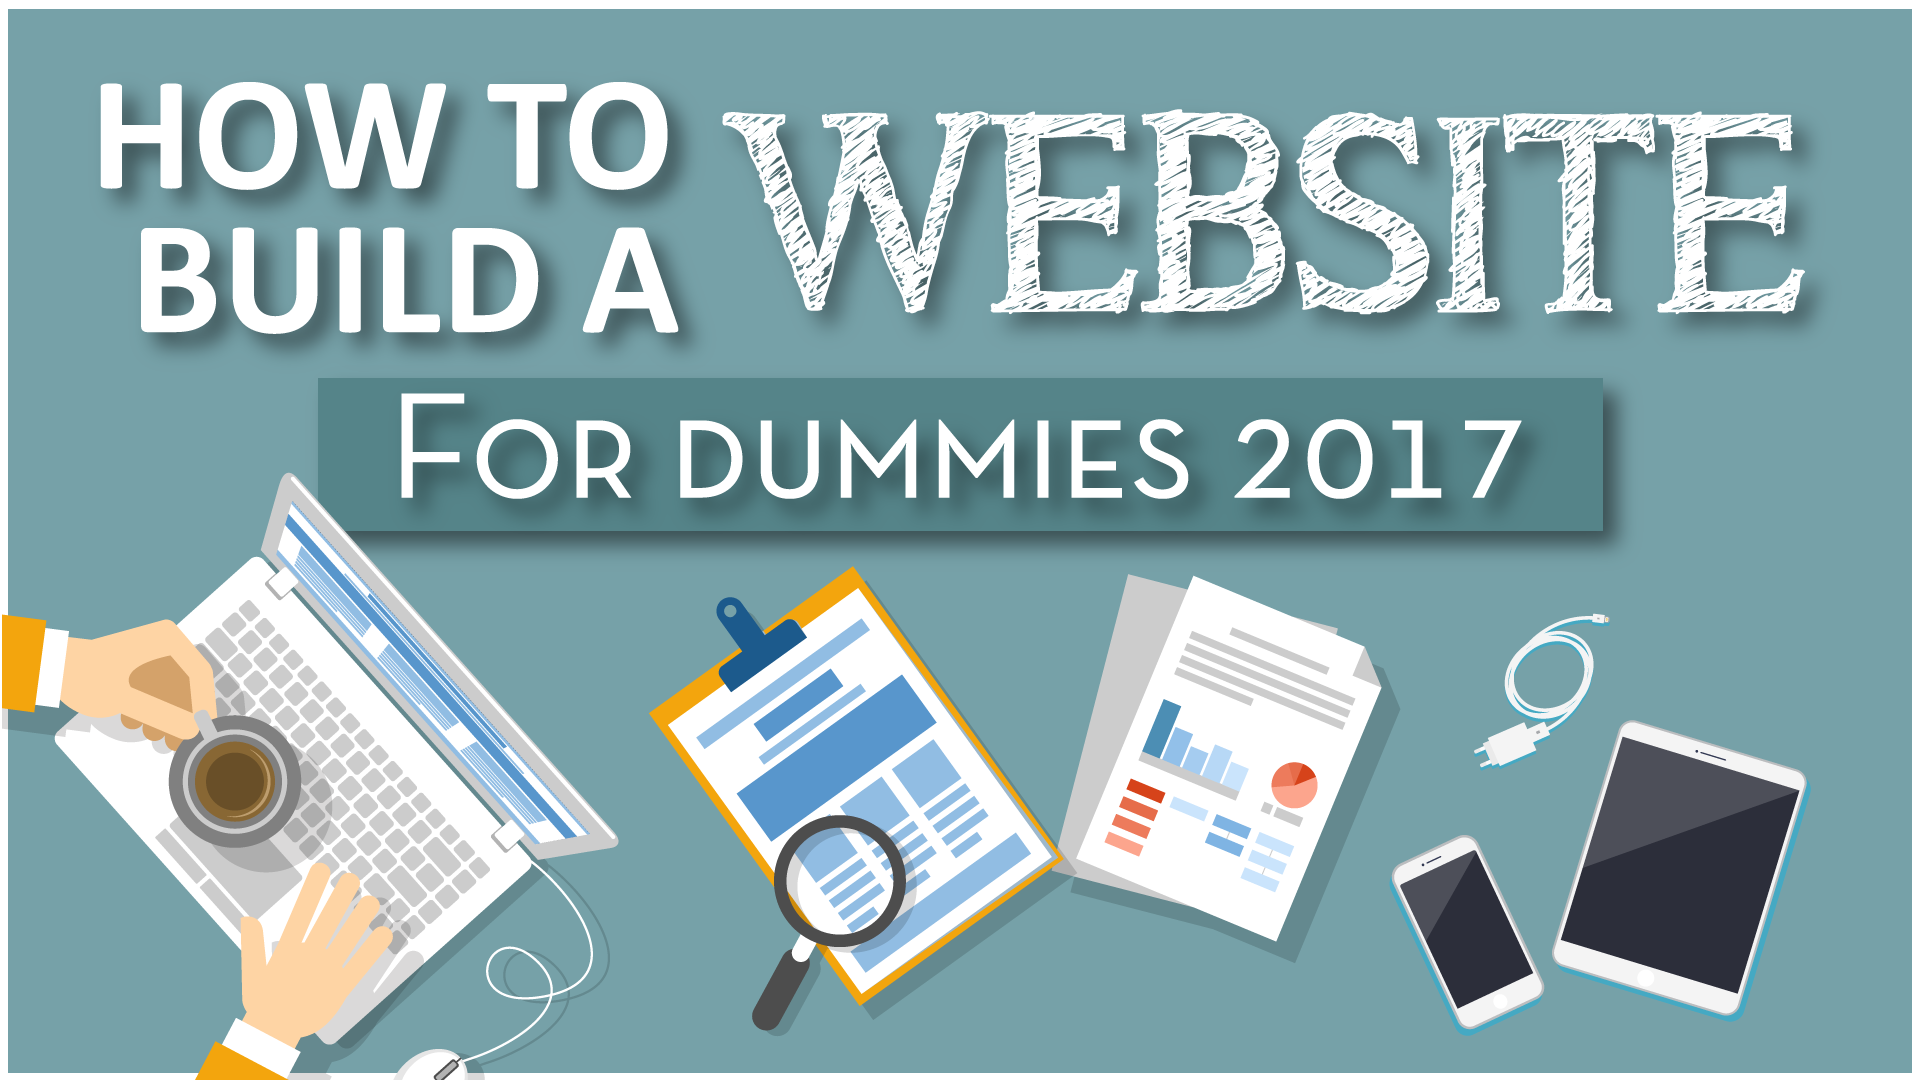 Building a Web Site For Dummies - PDF eBook Free Download